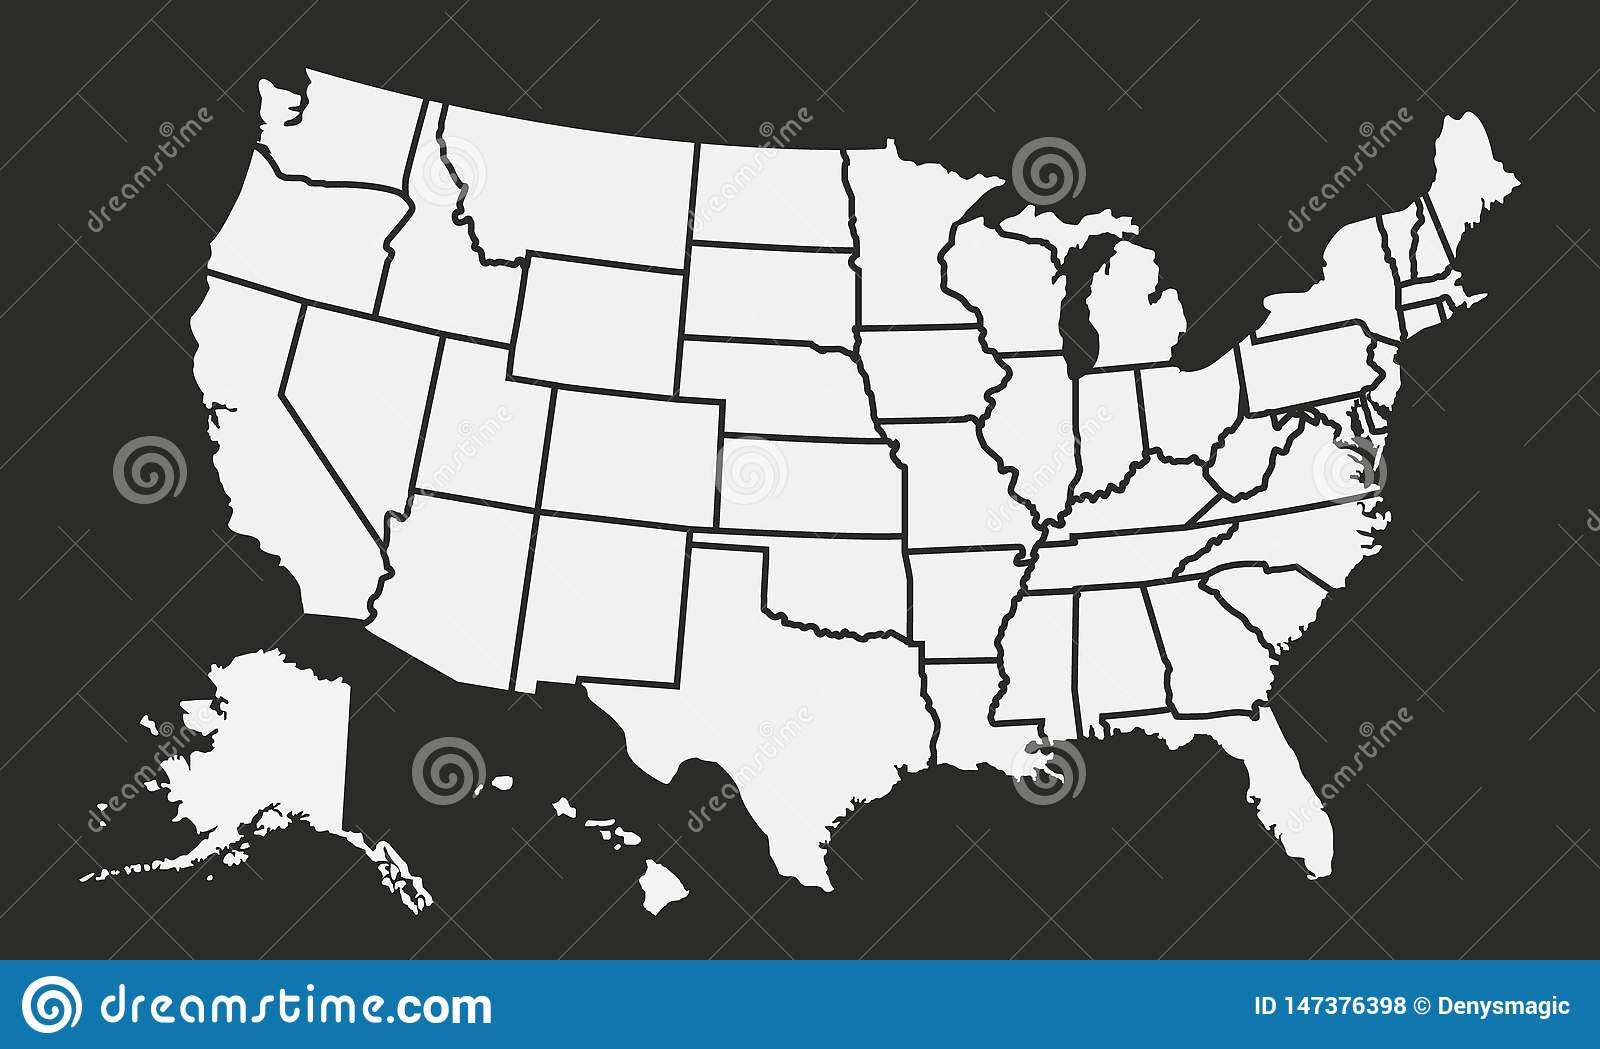 USA Map Isolated On A Black Background. United States Of ... Usa Map Logo Black on usa welcome logo, usa parking logo, google maps logo, united states logo, usa art logo, usa restaurant logo, usa car logo, usa login logo, us states logo, usa letter logo, usa outline logo, usa union logo, education usa logo, north america logo, usa baseball logo, usa travel logo, usa school logo, usa hockey logo, product of usa logo, usa hat logo,